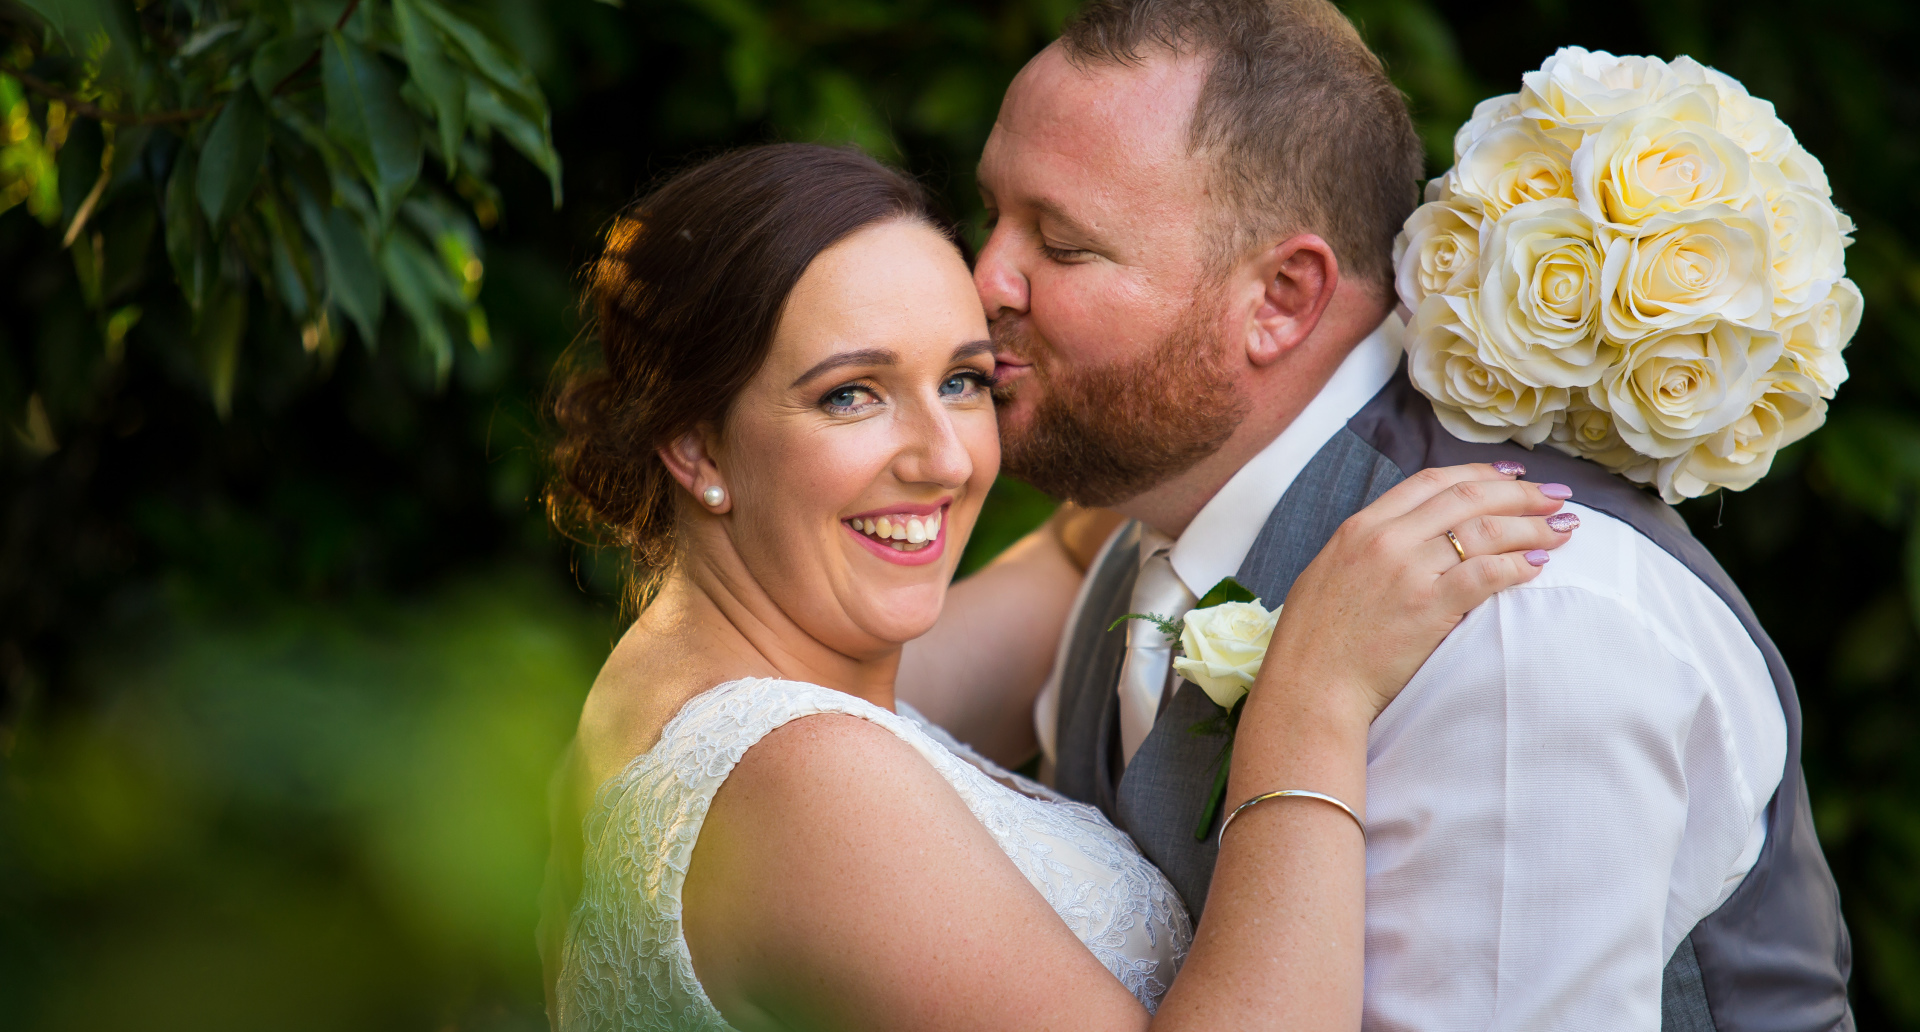 Michael & Keralee | Peacehaven Park Highfields | Toowoomba Wedding Photography